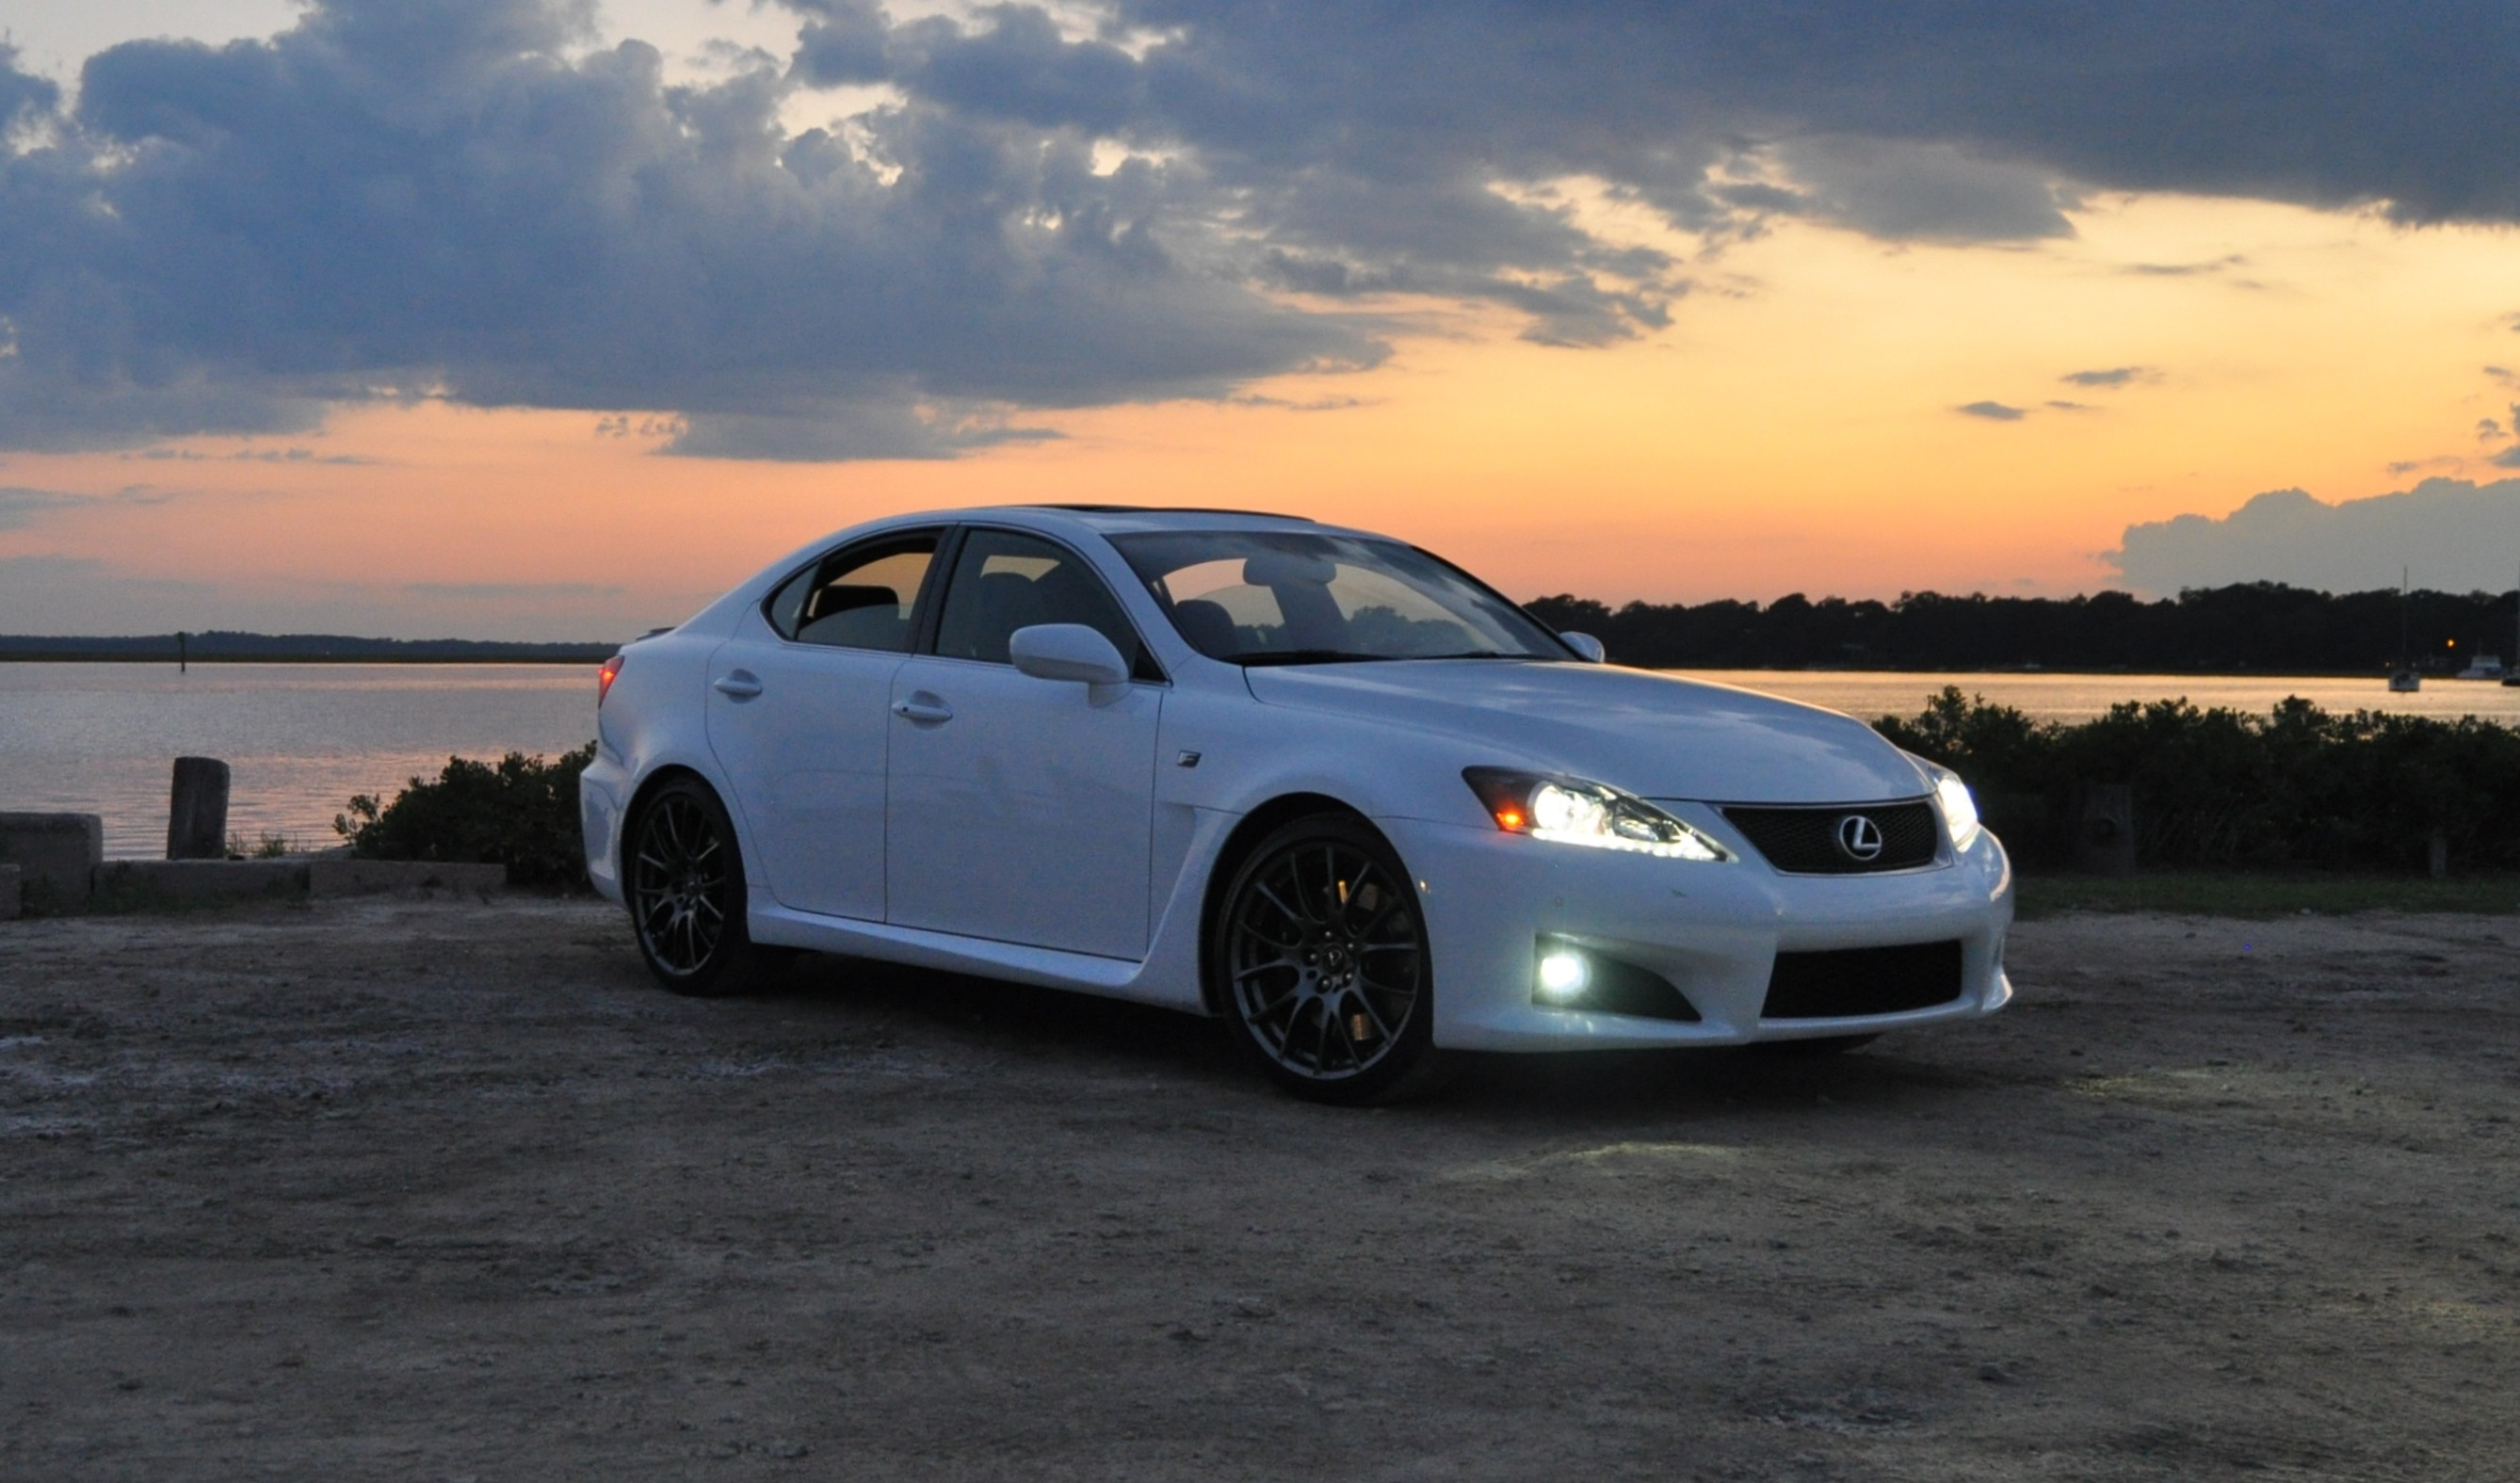 2014 Lexus IS F Looking Sublime In Sunset Photo Shoot 4 ...